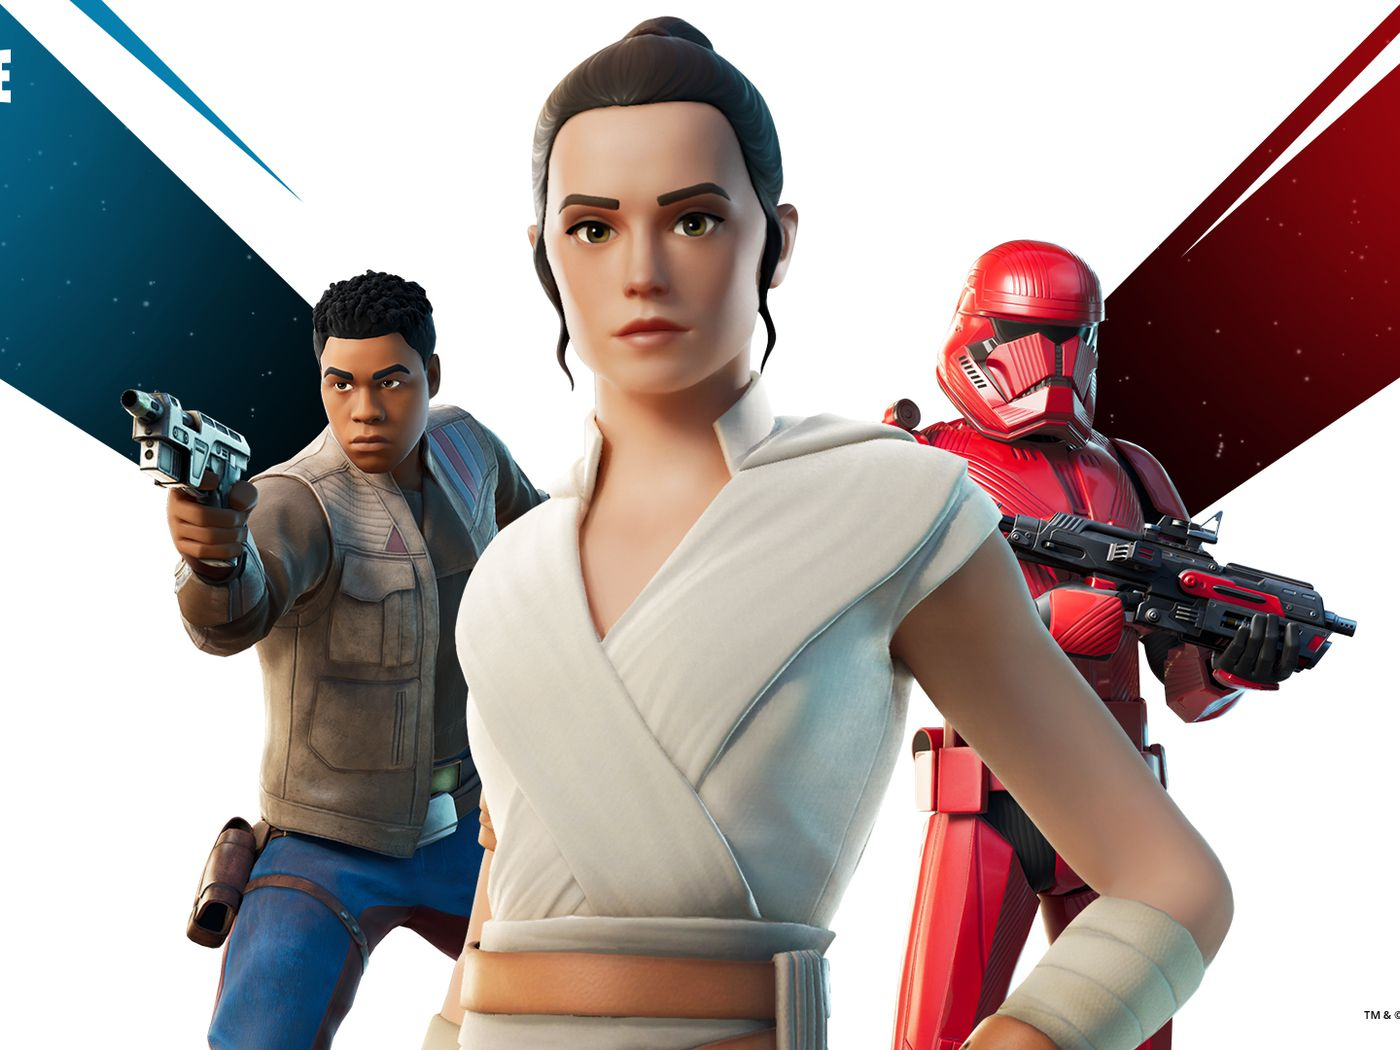 Fortnite Adds Rey And Finn Skins In Time For Star Wars The Rise Of Skywalker The Verge